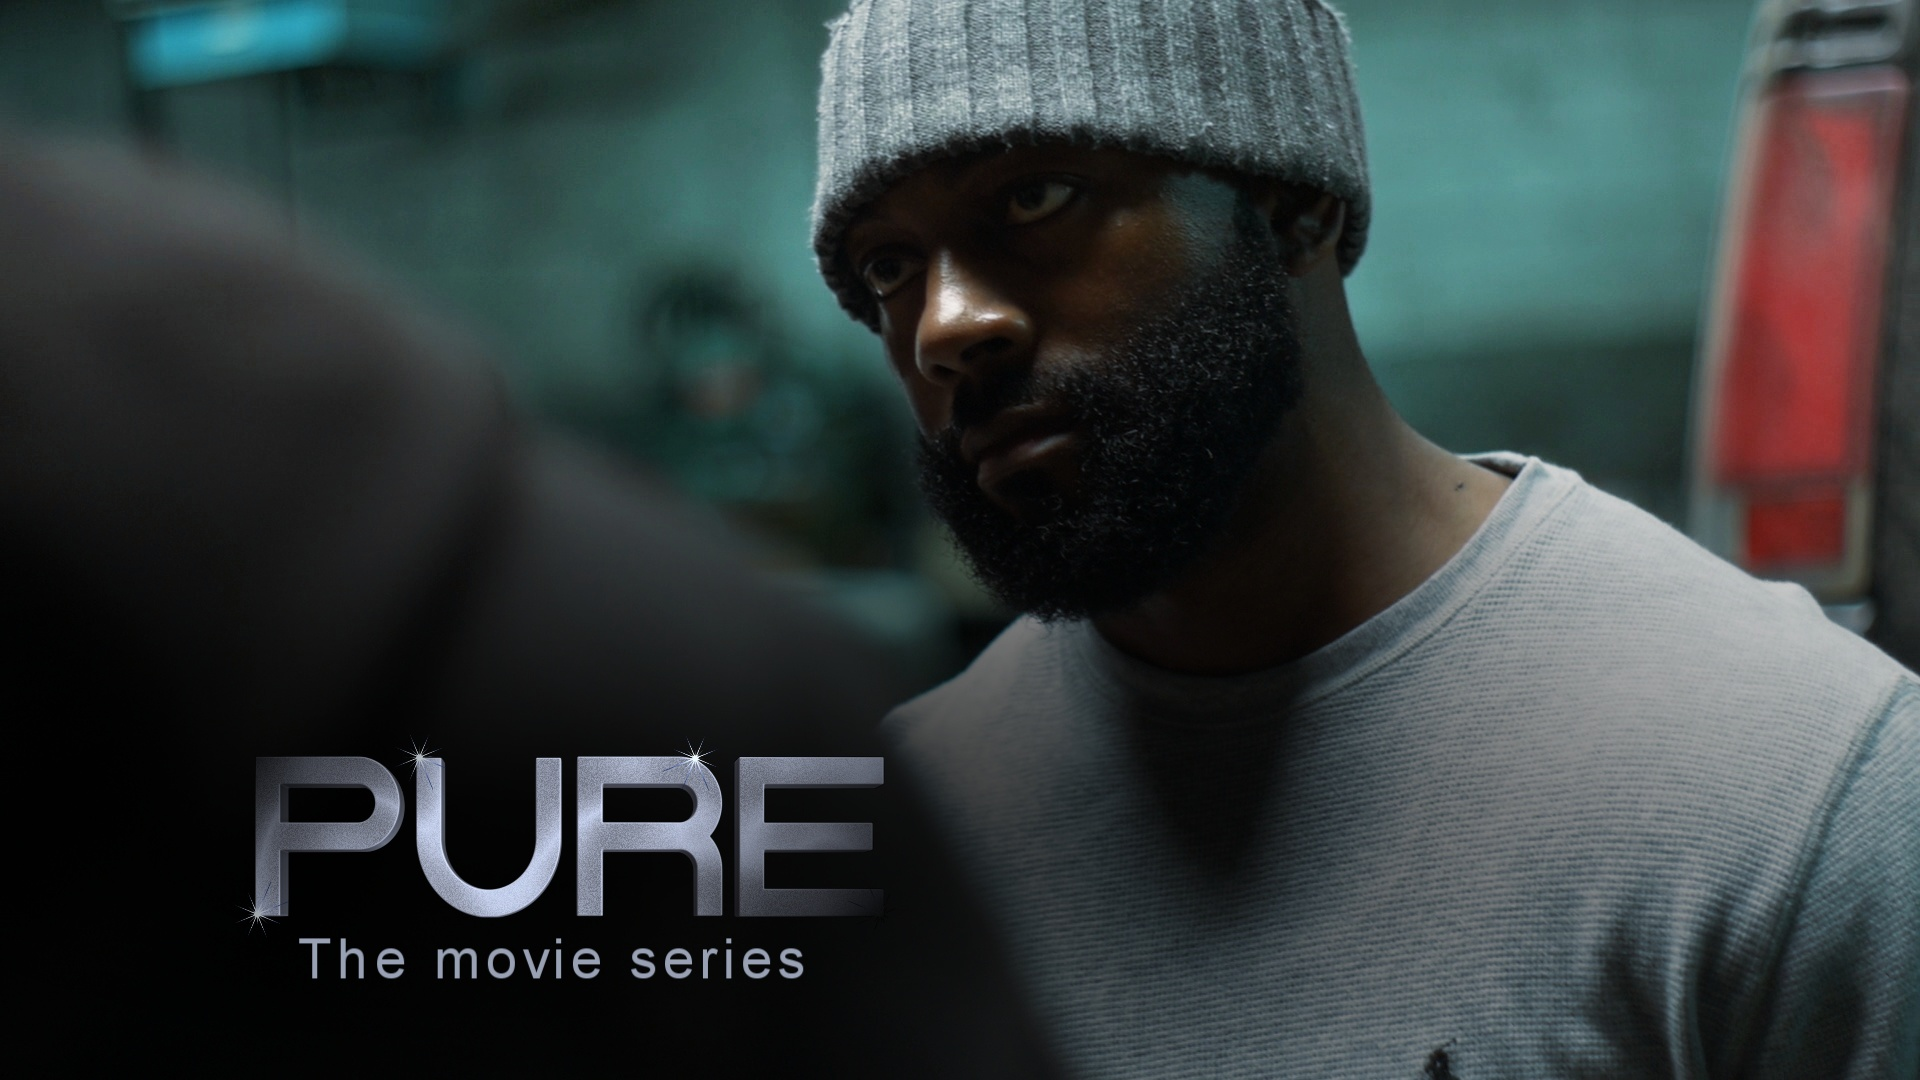 Pure the movie series